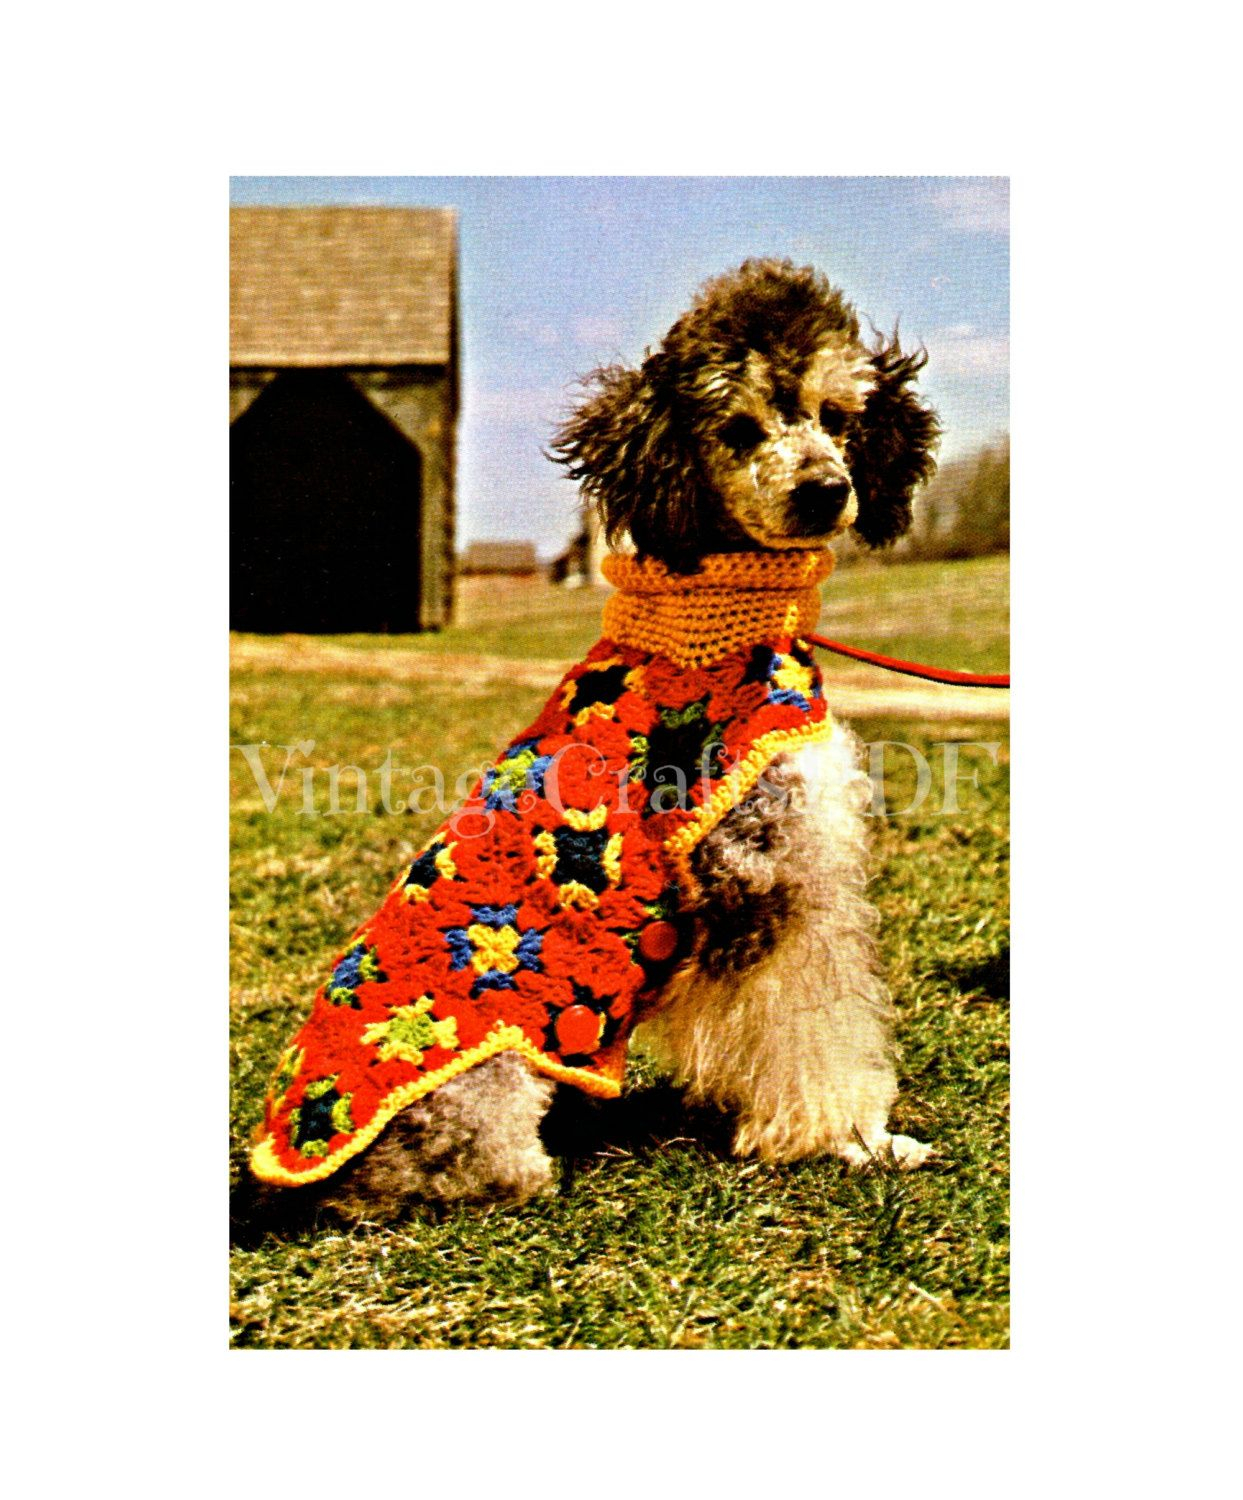 1970s granny square putting on the dog coat vintage crochet granny square putting on the dog coat vintage crochet patterndog coat dog jacket dog sweater easy crochet pattern puppy coat sweater by vintagecraftspdf on bankloansurffo Image collections